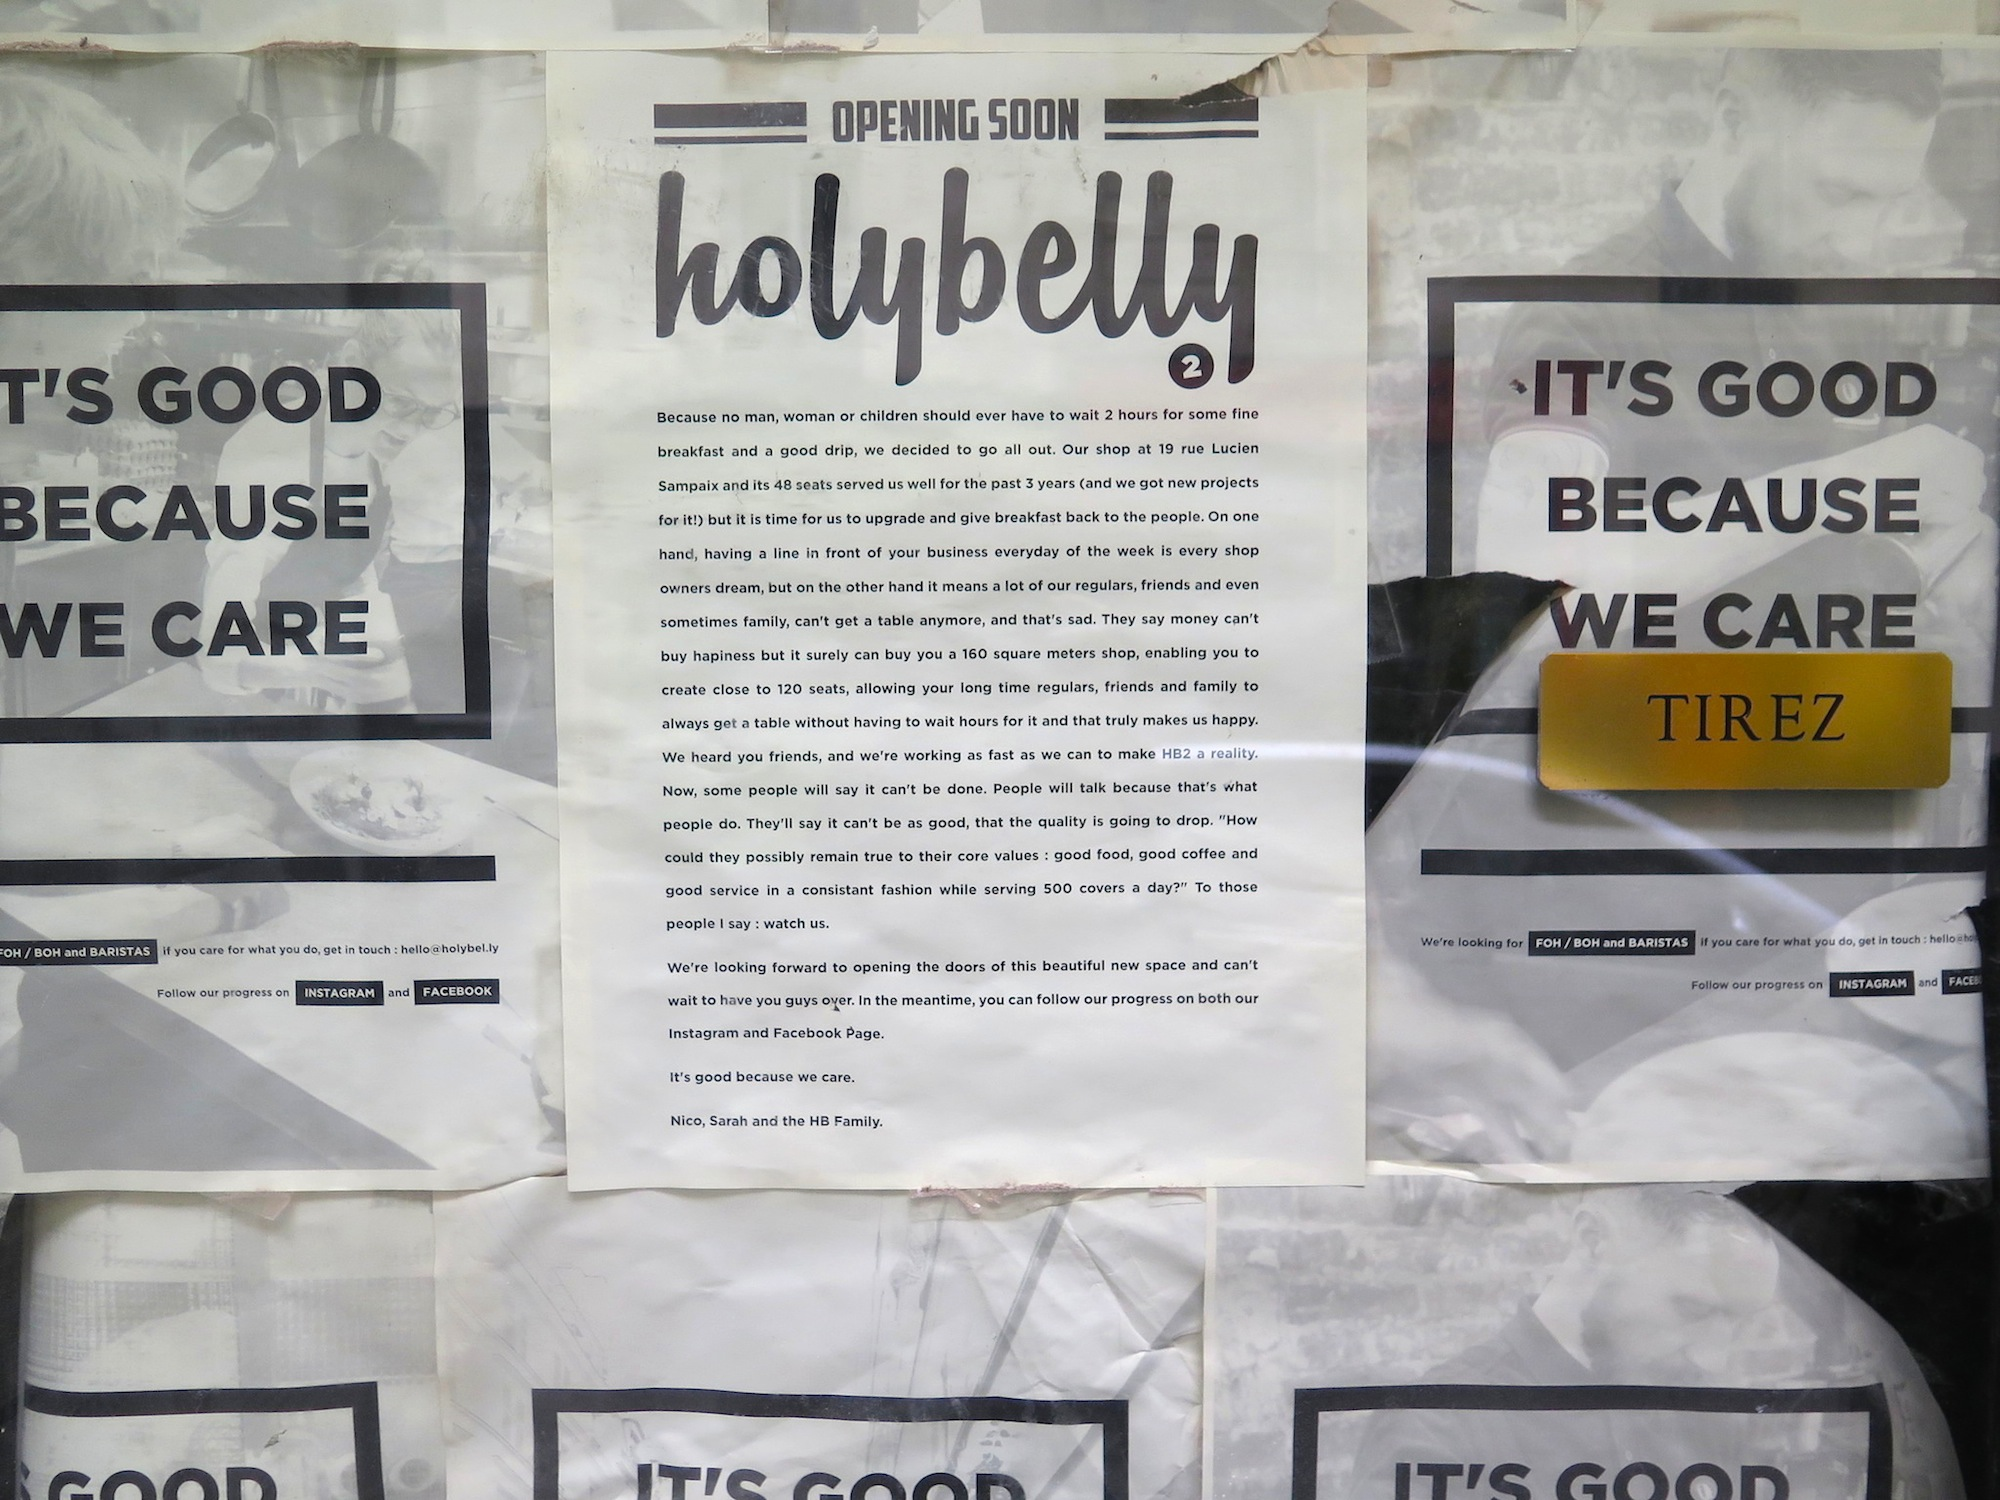 HiP Paris BLog: Holybelly Opens Second Location